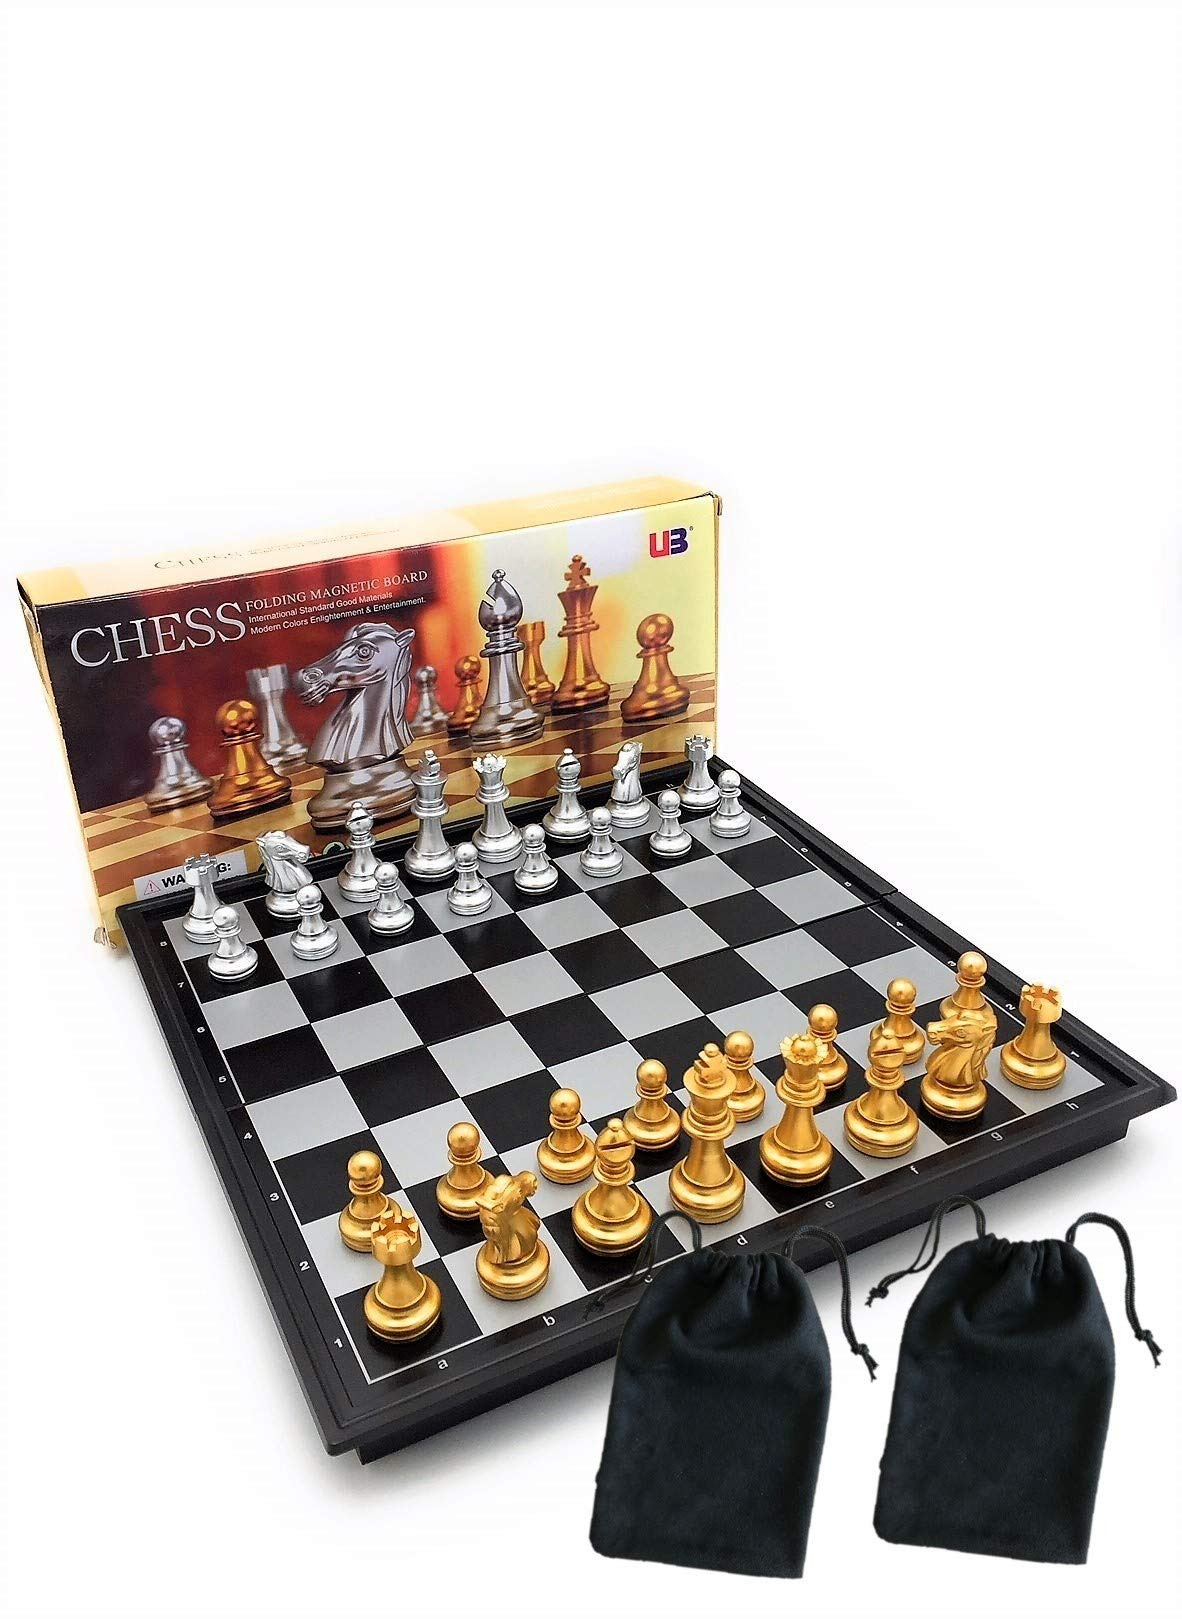 Chess Pro Chess Set, Magnetic Chess Set, Chess Board, Chess Pieces, Chess Sets for Adults Board Games 9.7 Inches by CHESS PRO